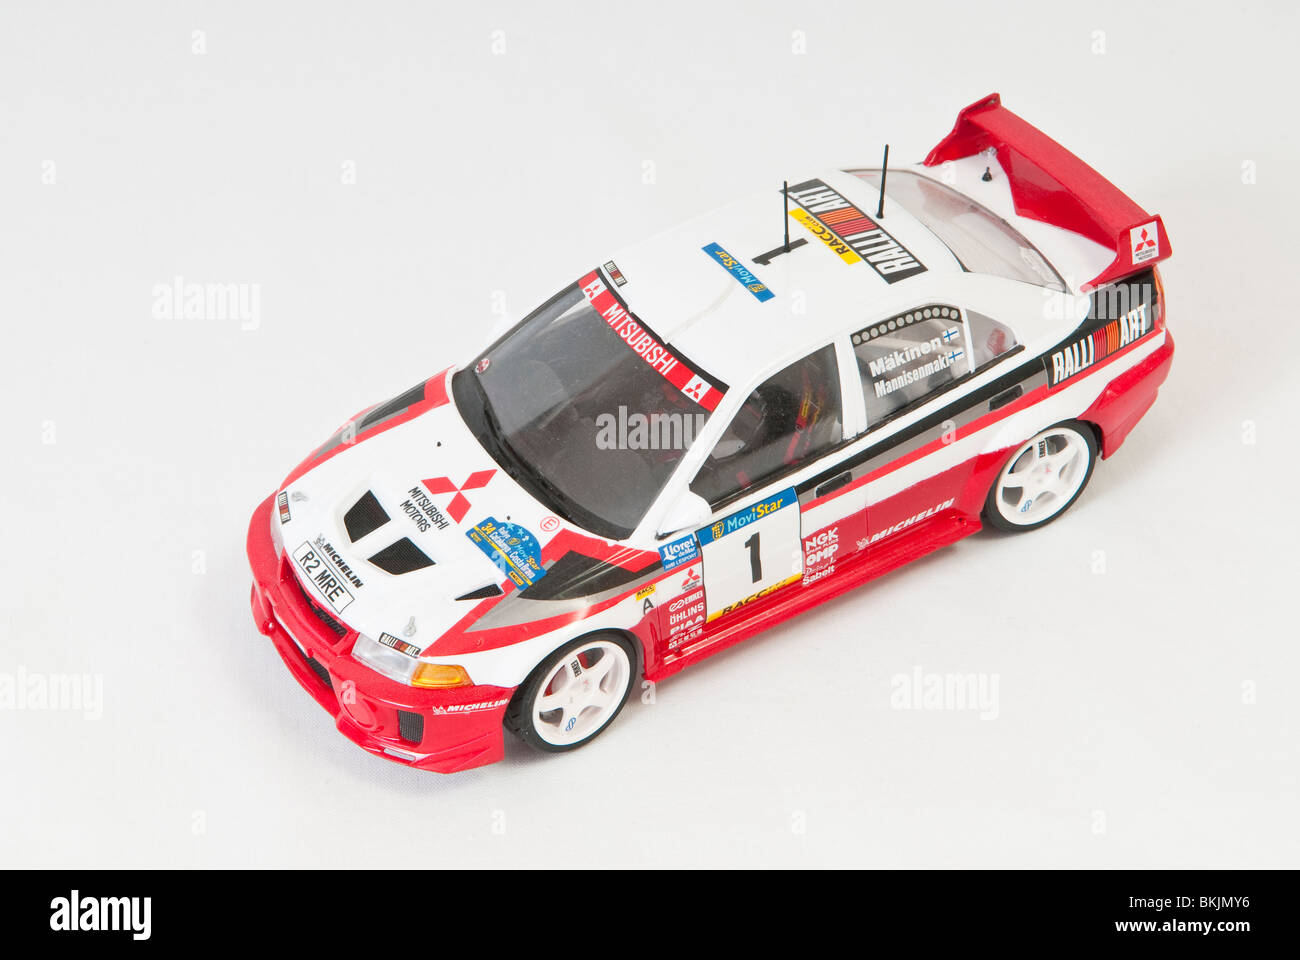 Model Of A Mitsubishi Evo 6 Rally Car Stock Photo, Royalty Free ...